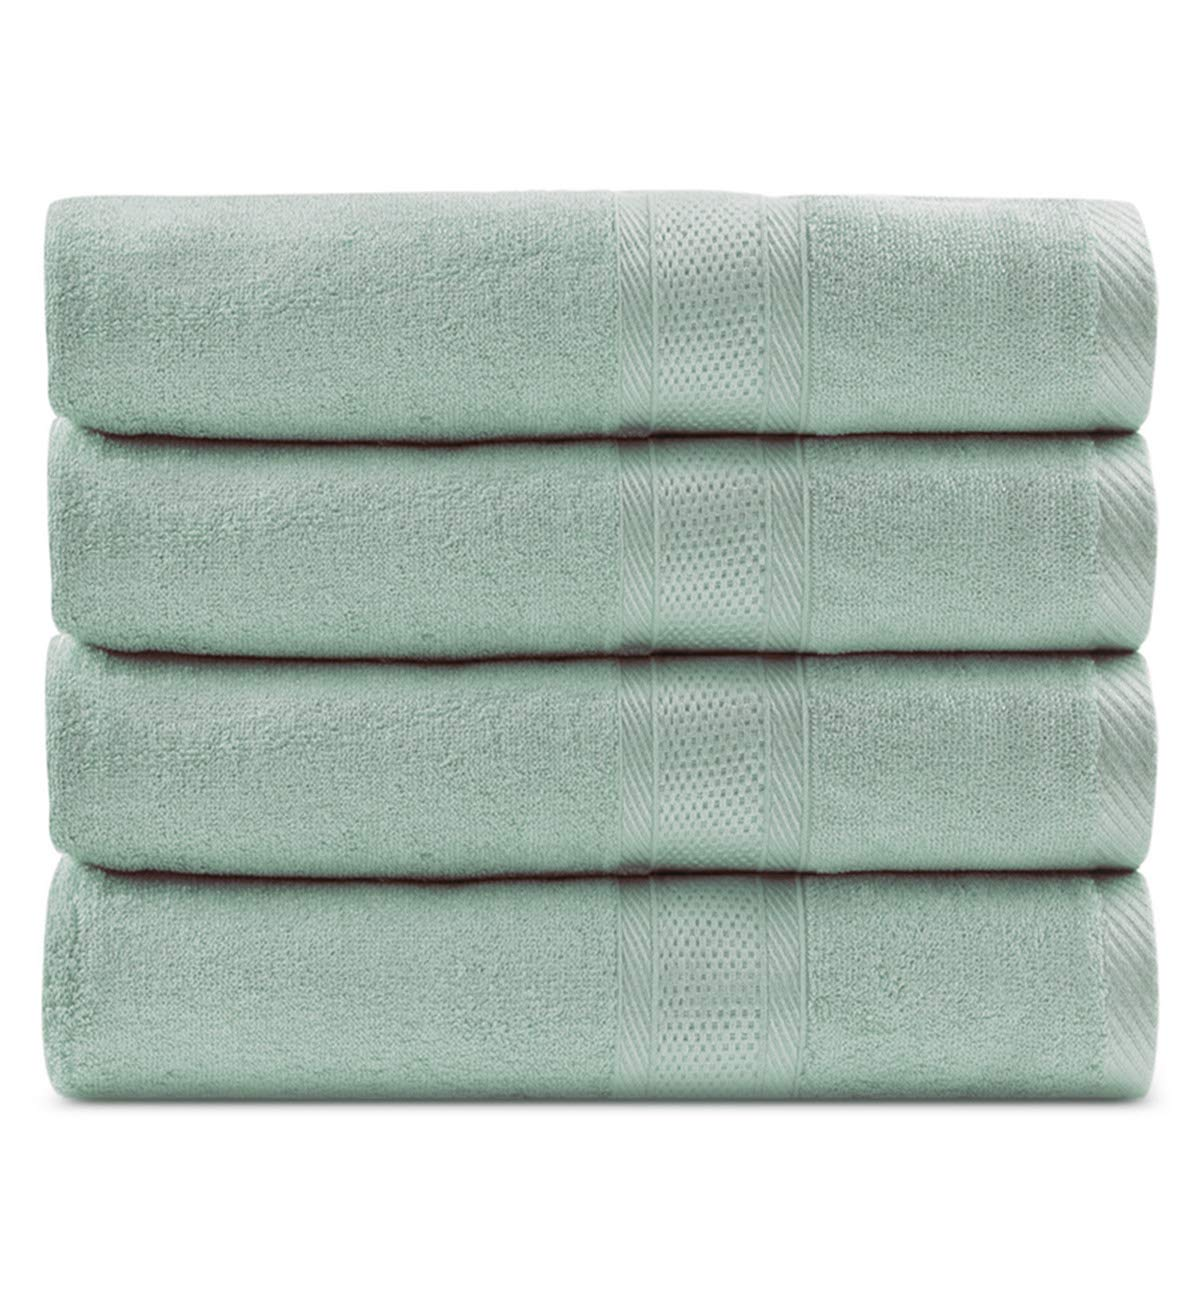 CC CAIHONG Luxury Bamboo Natural Large Bath Towel Set - Silky, Ultra Absorbent and Ultra Soft - (4 Pack 27 x 55 inch) - Green